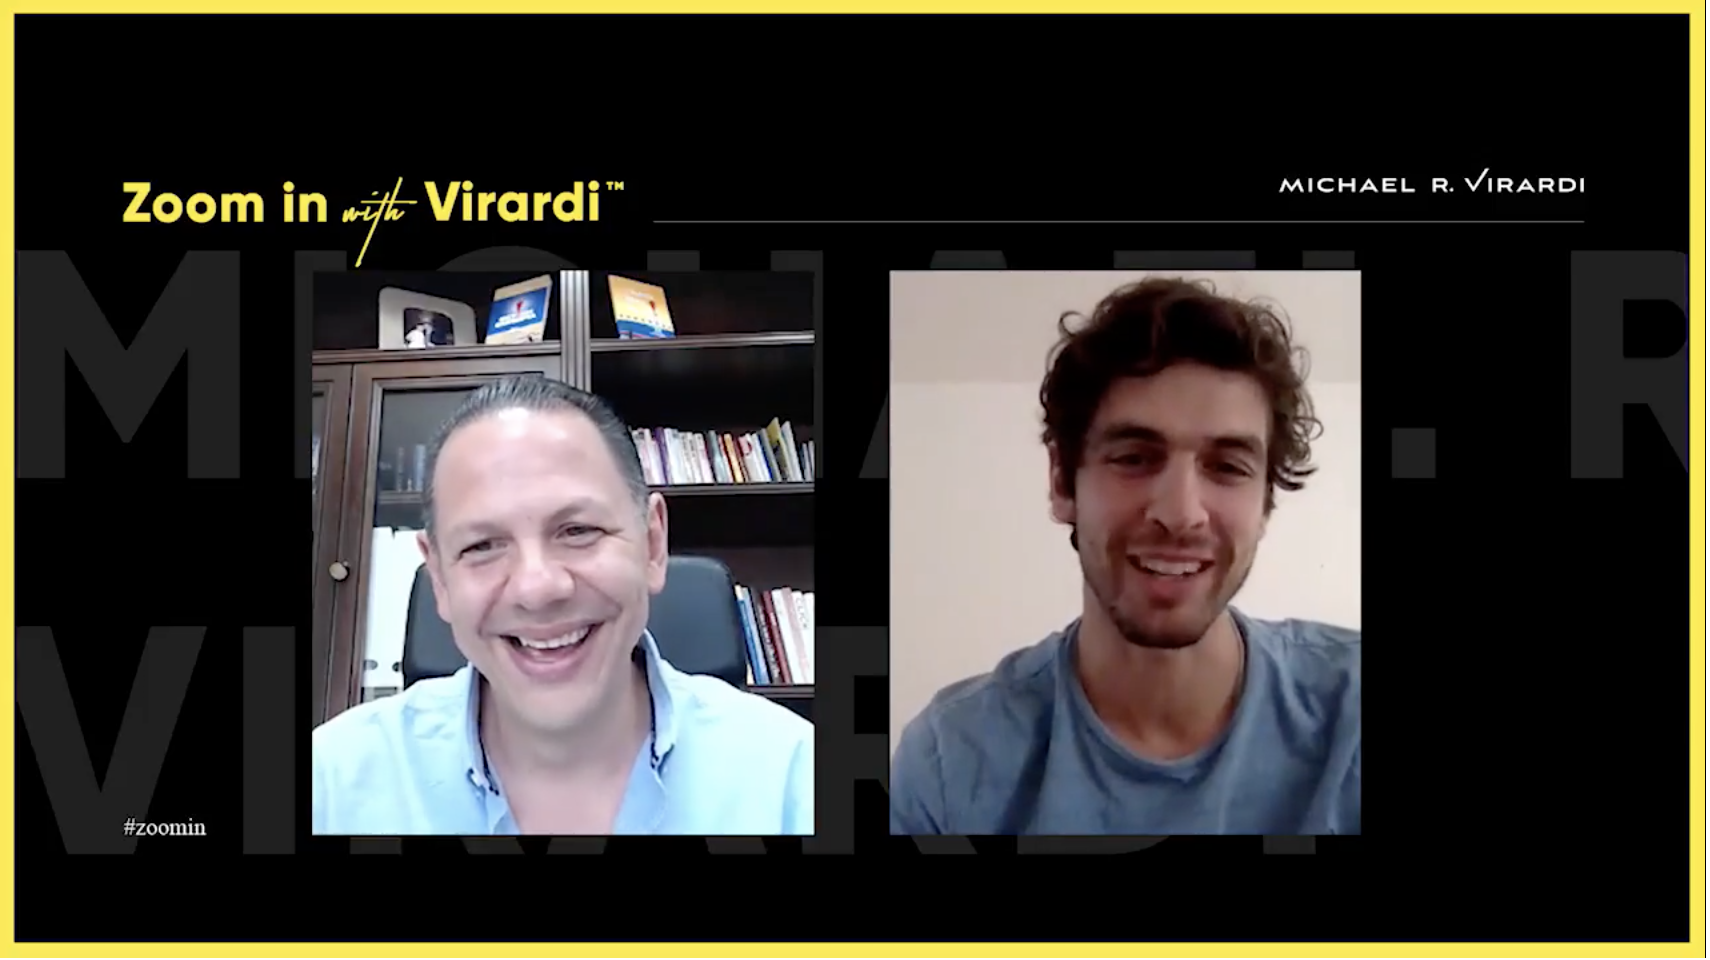 Michael Virardi - ZOOM IN with VIRARDI™ | Michalis Solomontos | ex-Googler | Episode 5